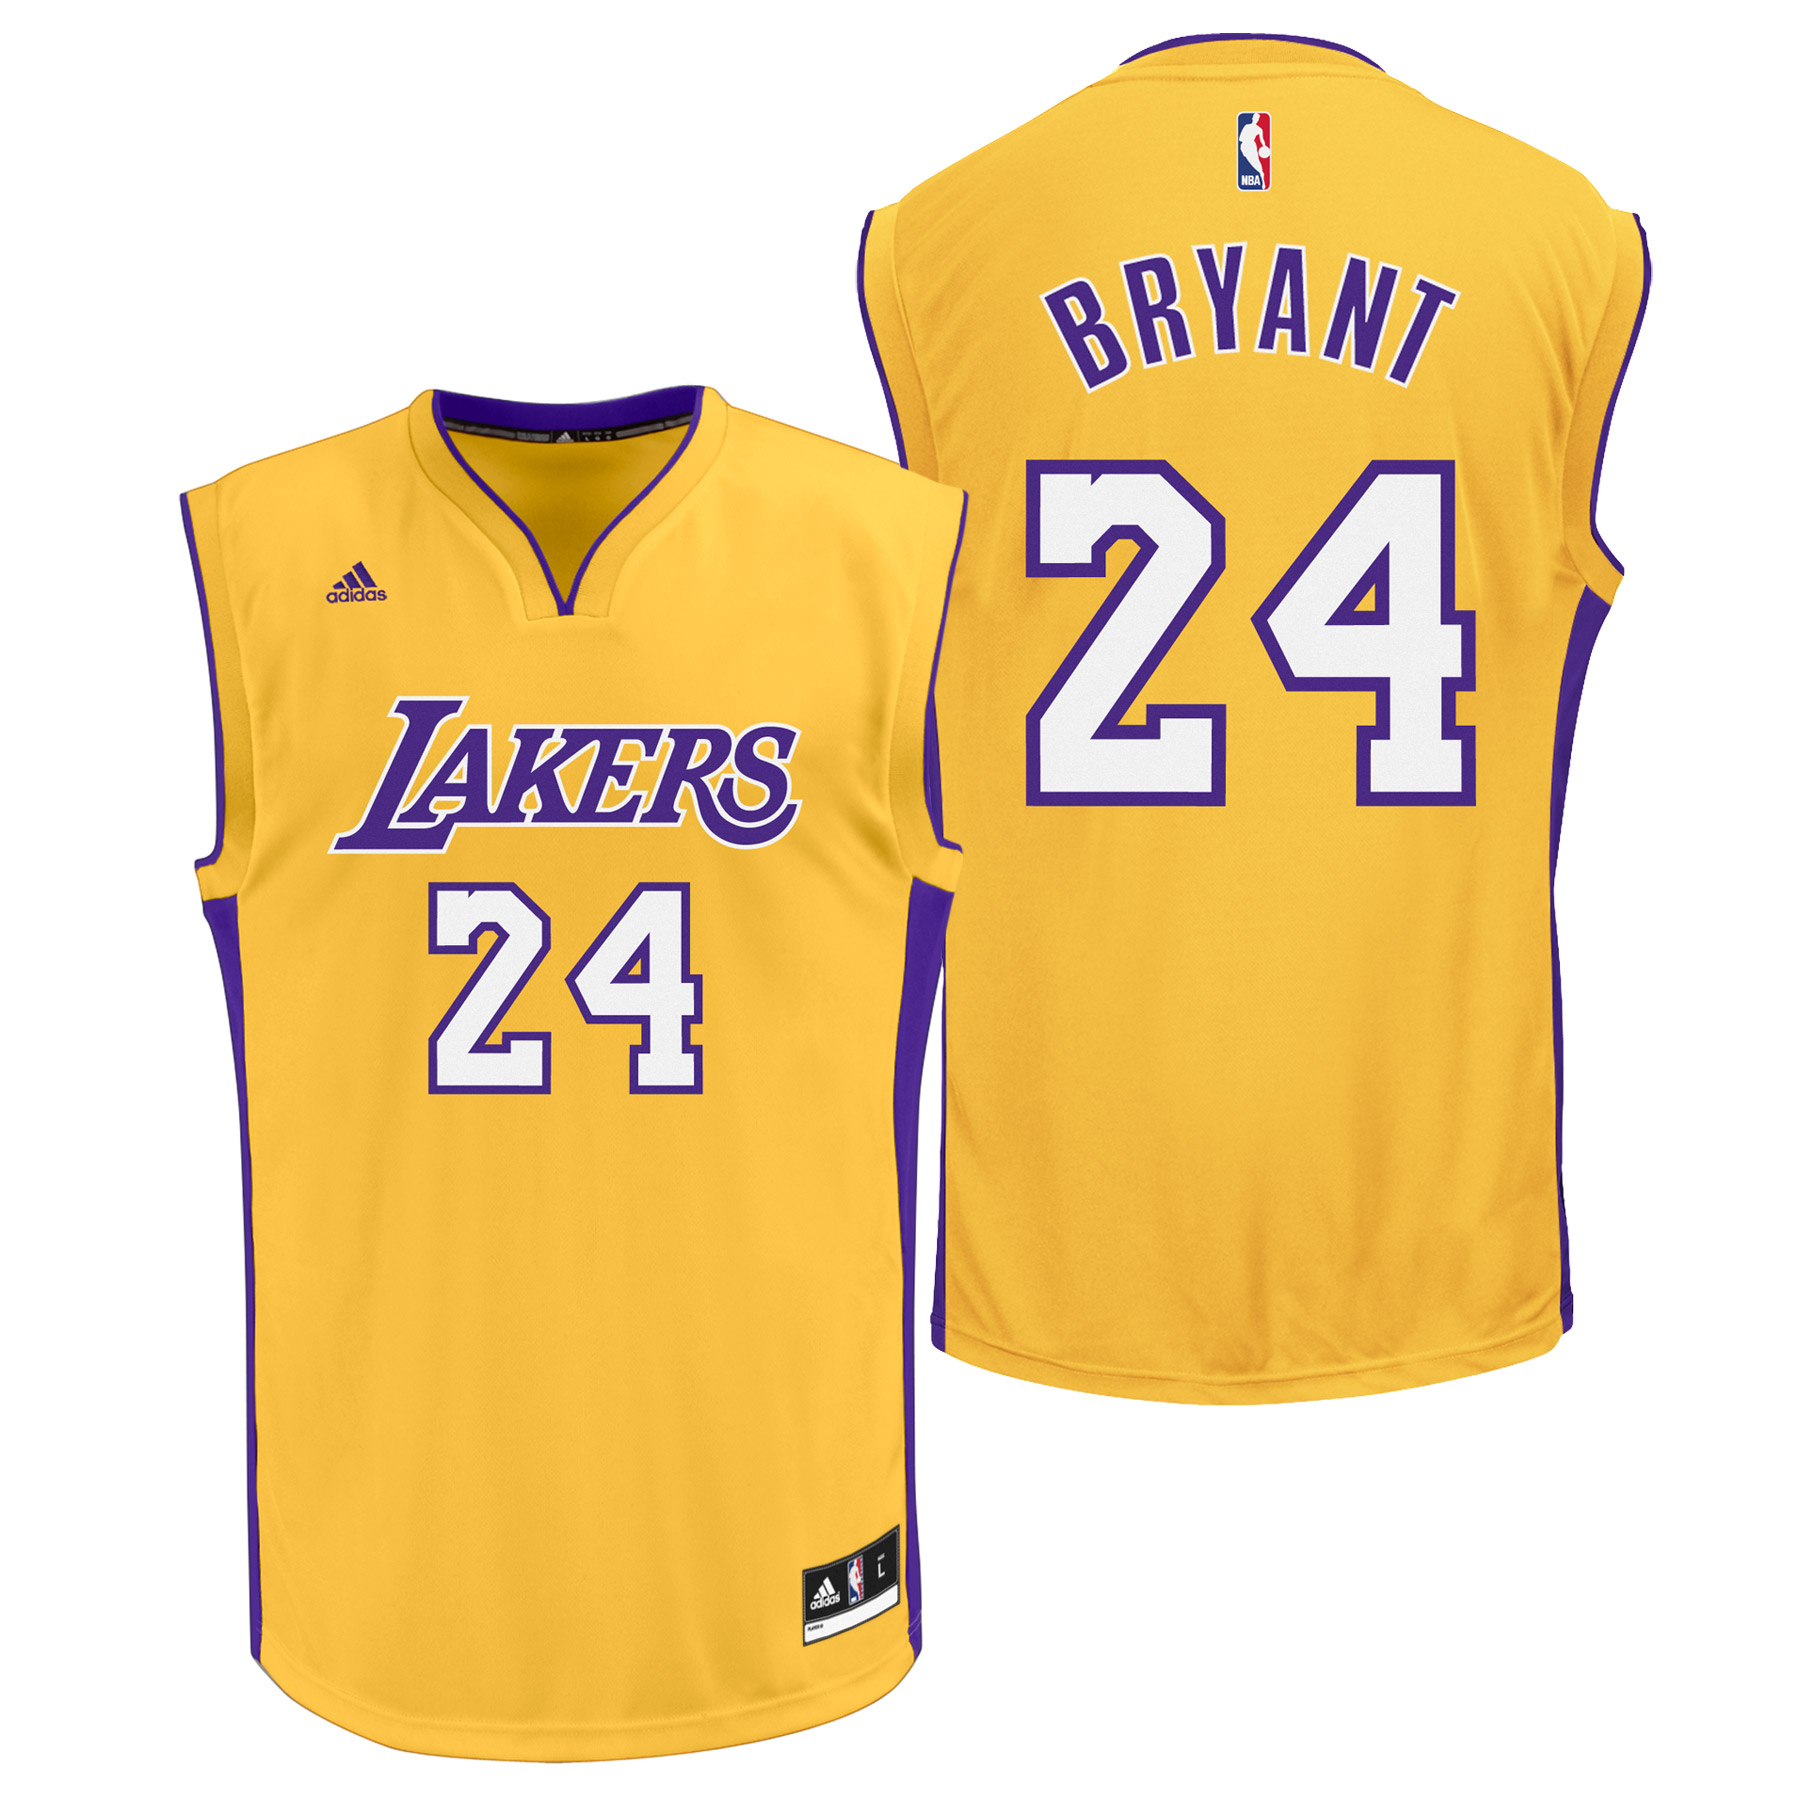 Los Angeles Lakers Home Replica Jersey - Kobe Bryant - Youth